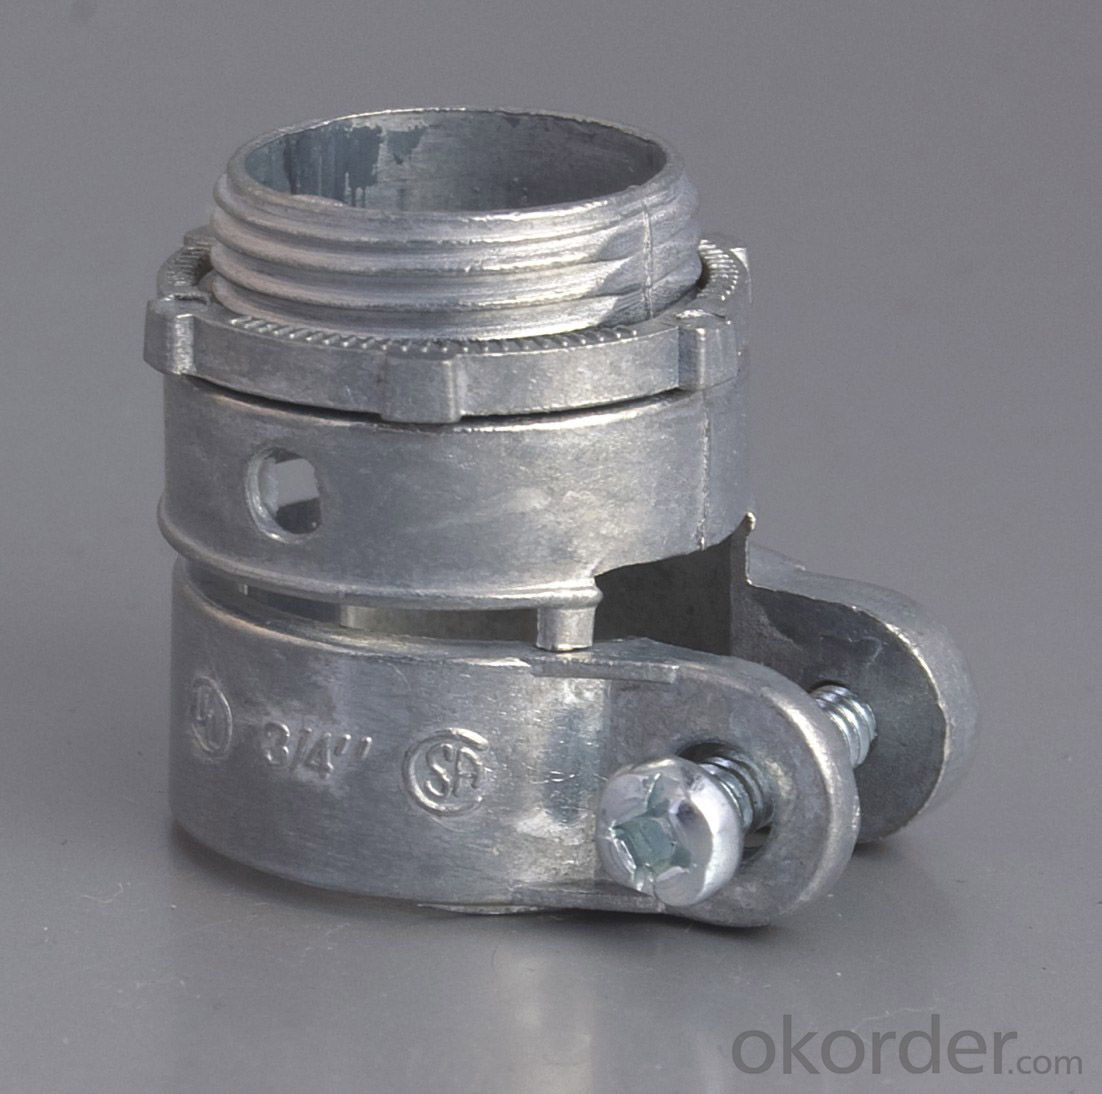 SQUEEZE CONNECTOR-ZINC,Snap-in connector, snap-lock connector,